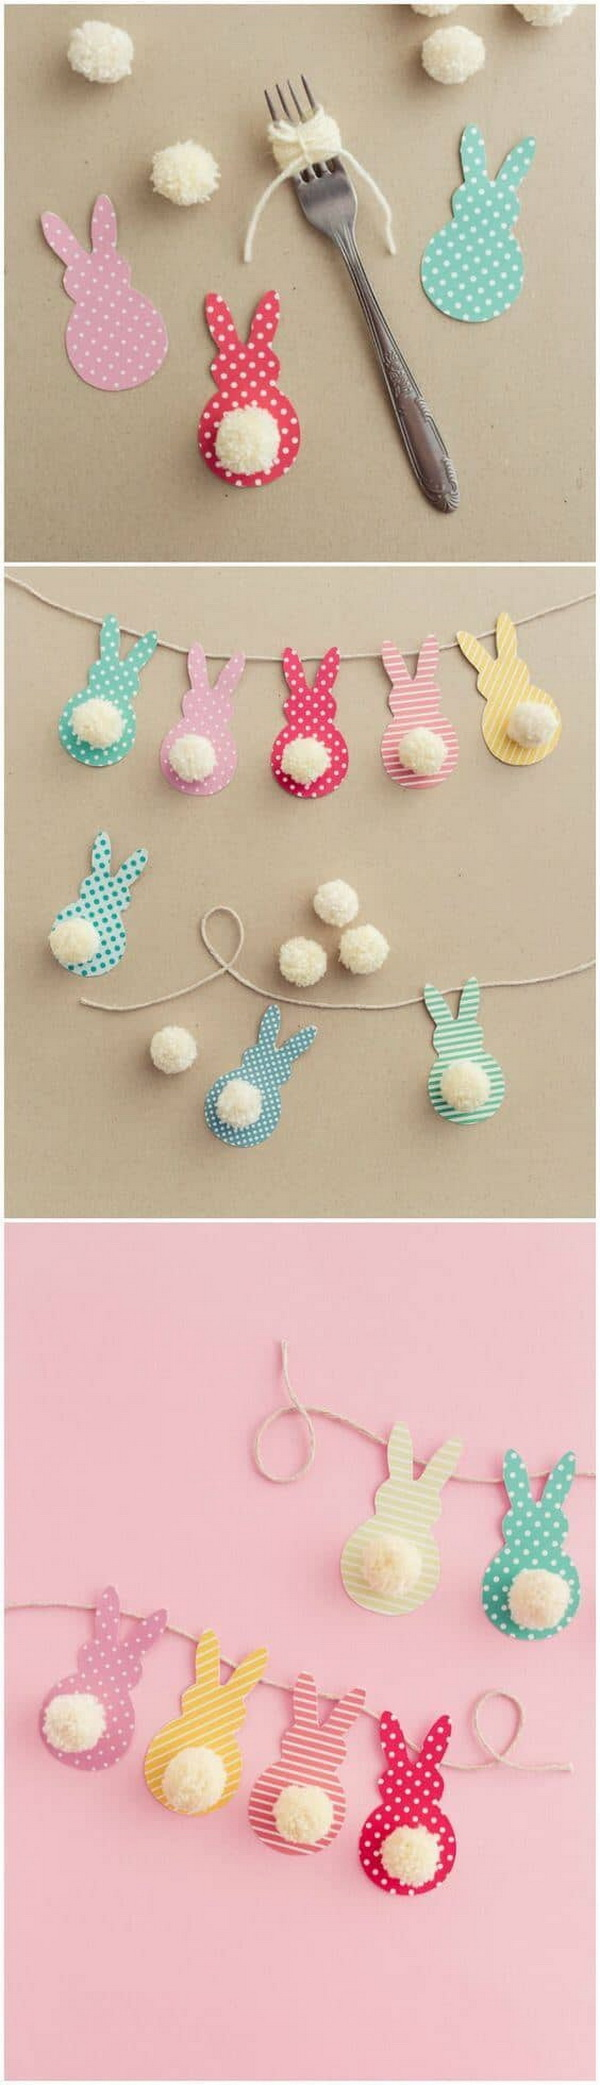 DIY Easter Decoration Ideas: Pom Pom Bunny Tail Easter Garland In A Few Steps.